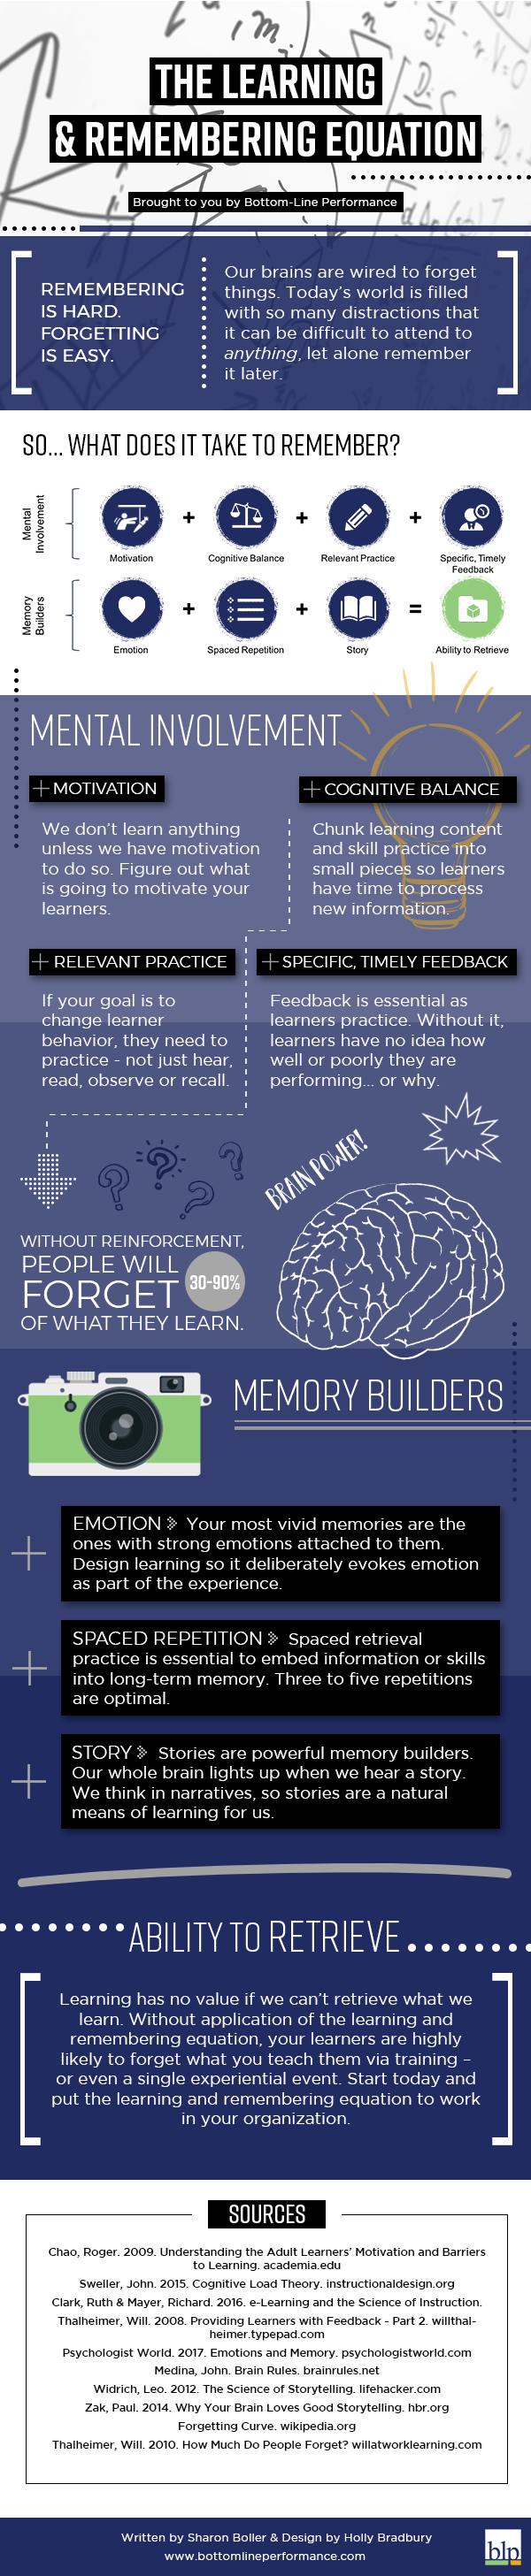 The Learning & Remembering Infographic